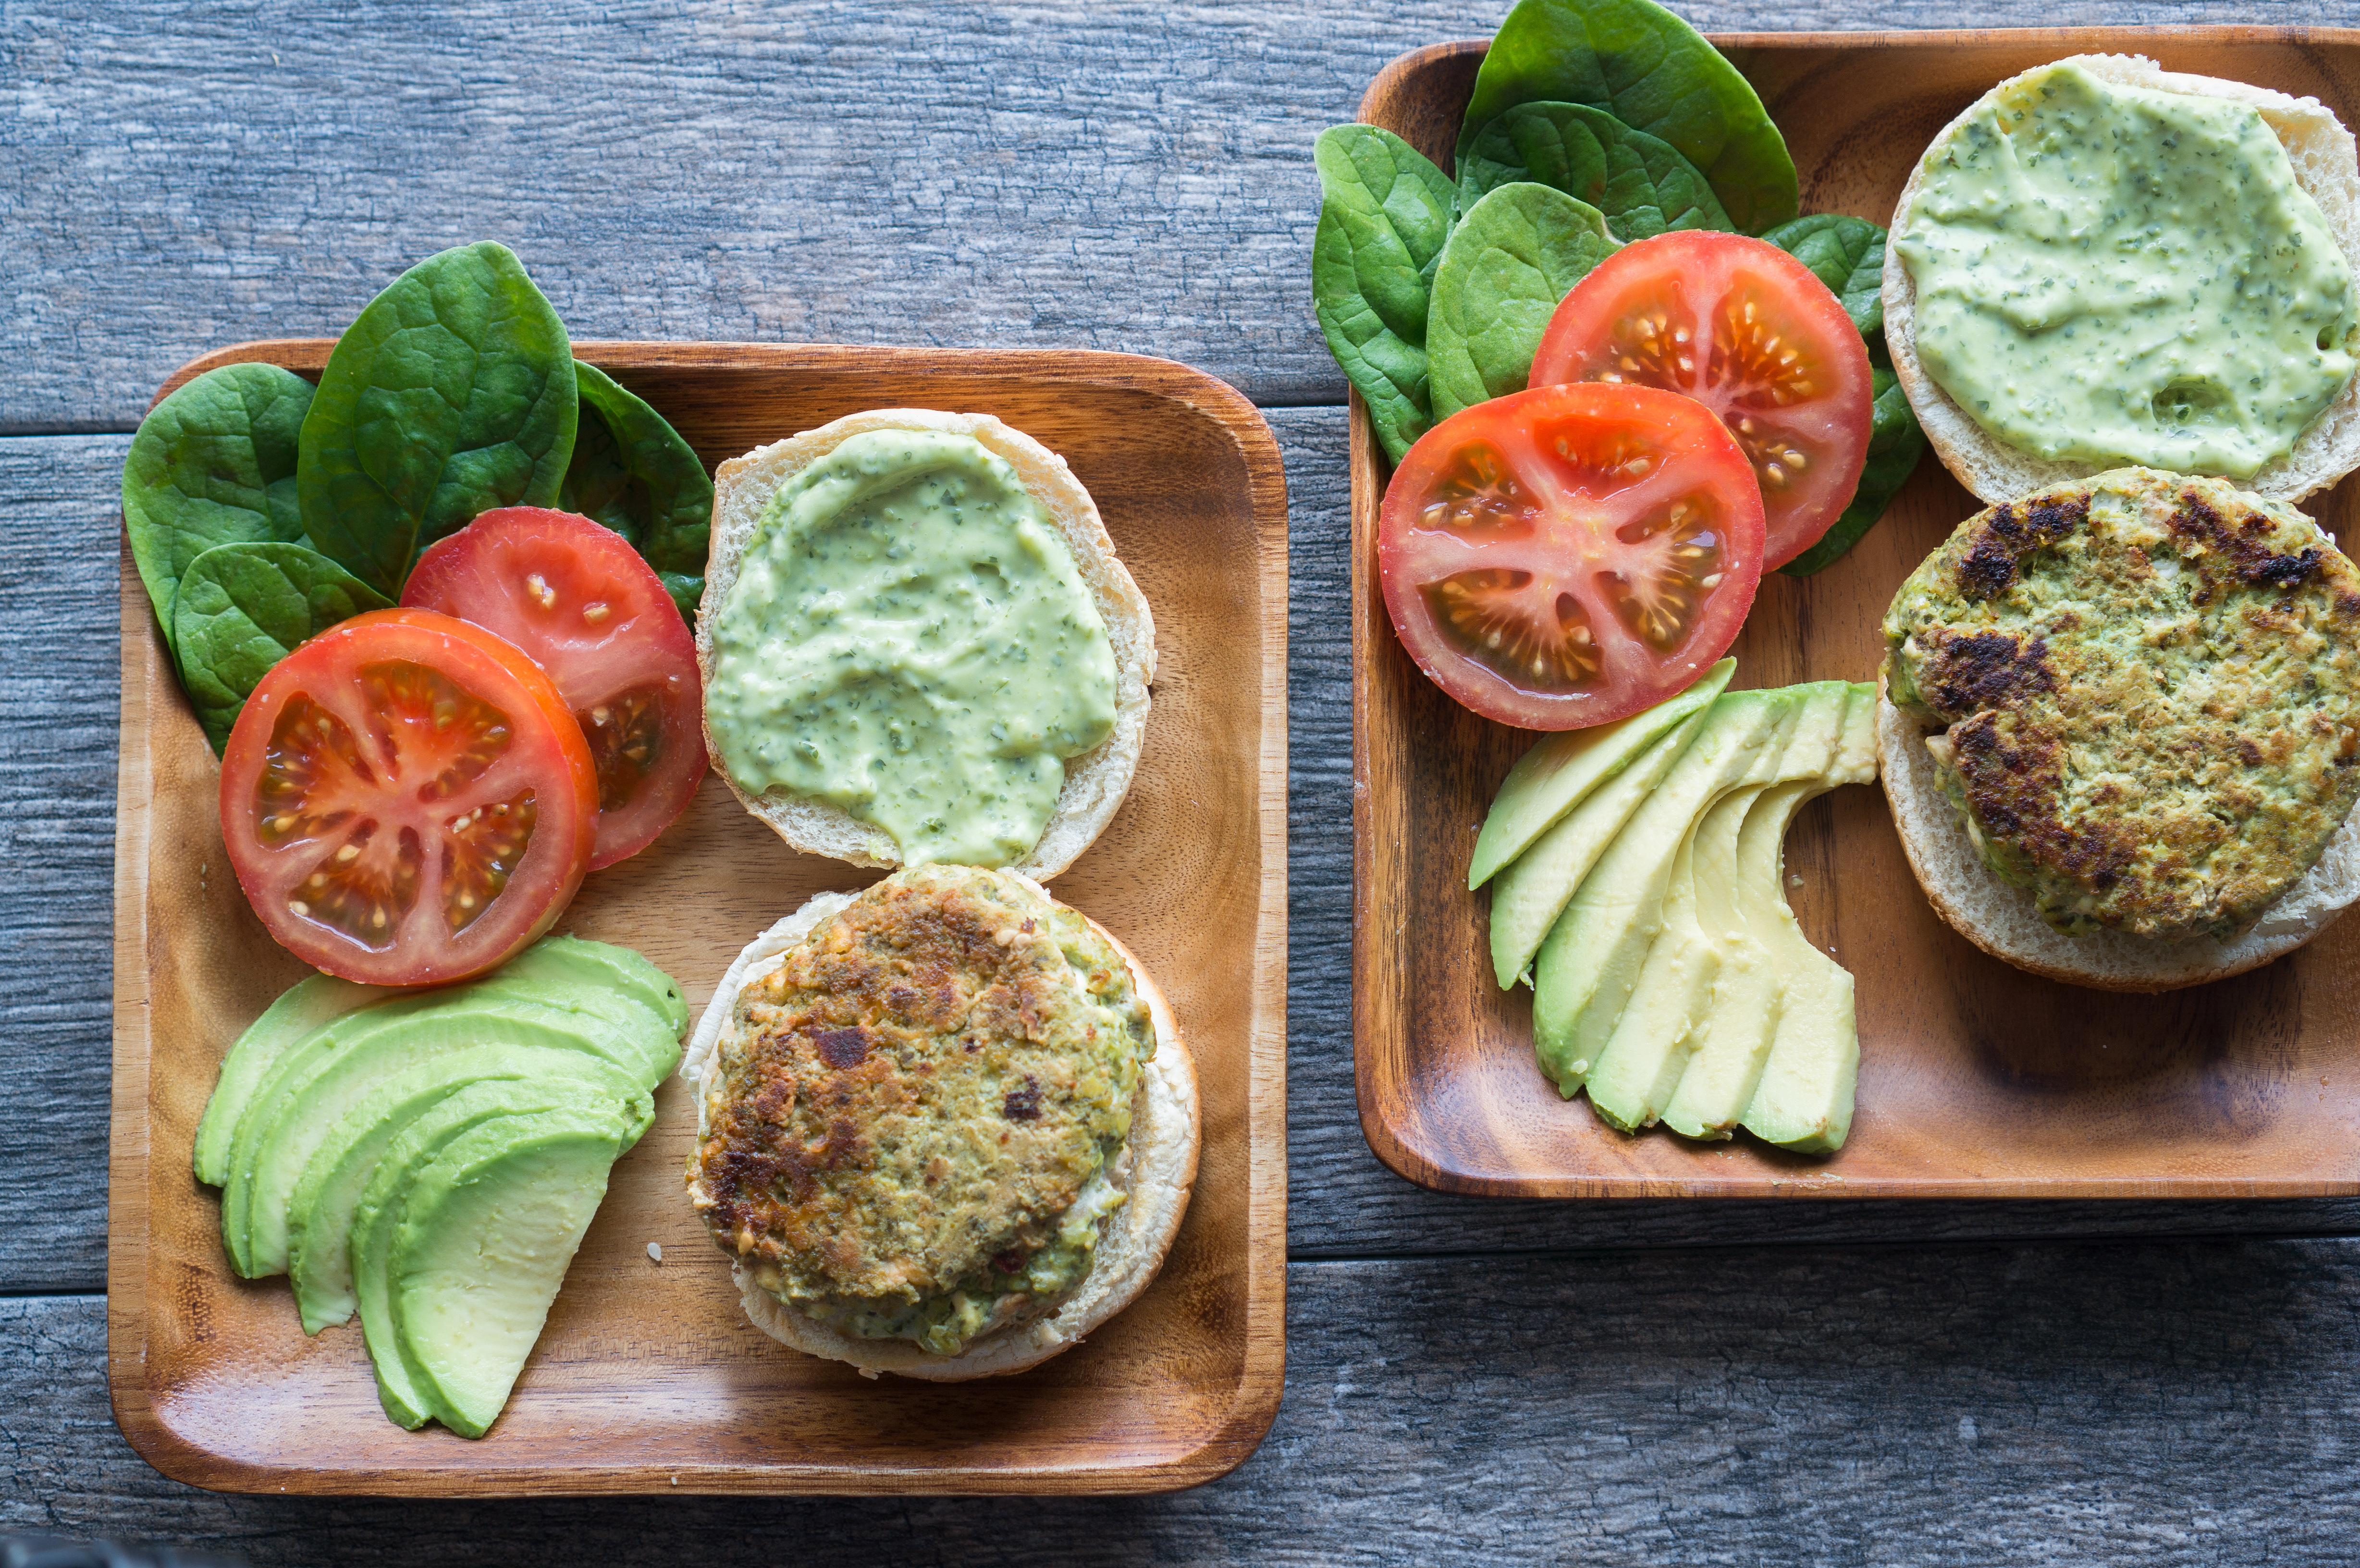 California Turkey Burgers – This healthy recipe for California Turkey Burgers with an easy pesto spread comes together in under 30 min! Enjoy on a salad, in a lettuce wrap, pita pocket, or sandwiched between sesame buns. These gluten-free patties use simple wholesome ingredients like lean ground turkey, basil pesto, low-fat cottage cheese, and coconut oil. We love stacking these with crisp fresh tomatoes, sliced avocado, and crispy bacon! ♥ | freeyourfork.com